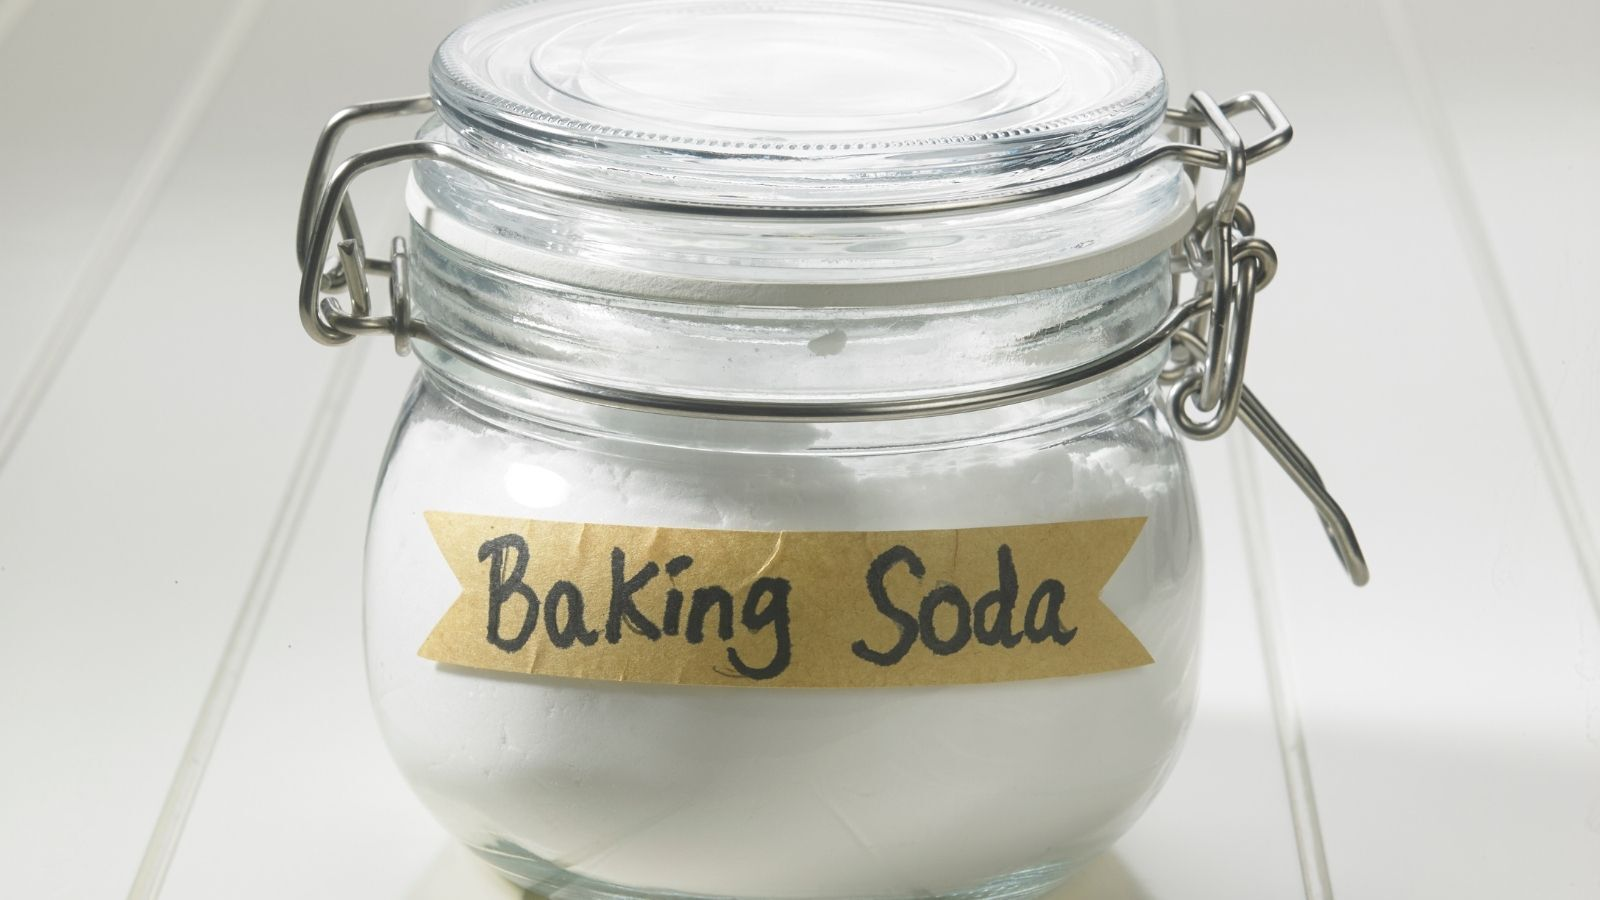 Baking Soda Remove Smoke Smell From Surfaces